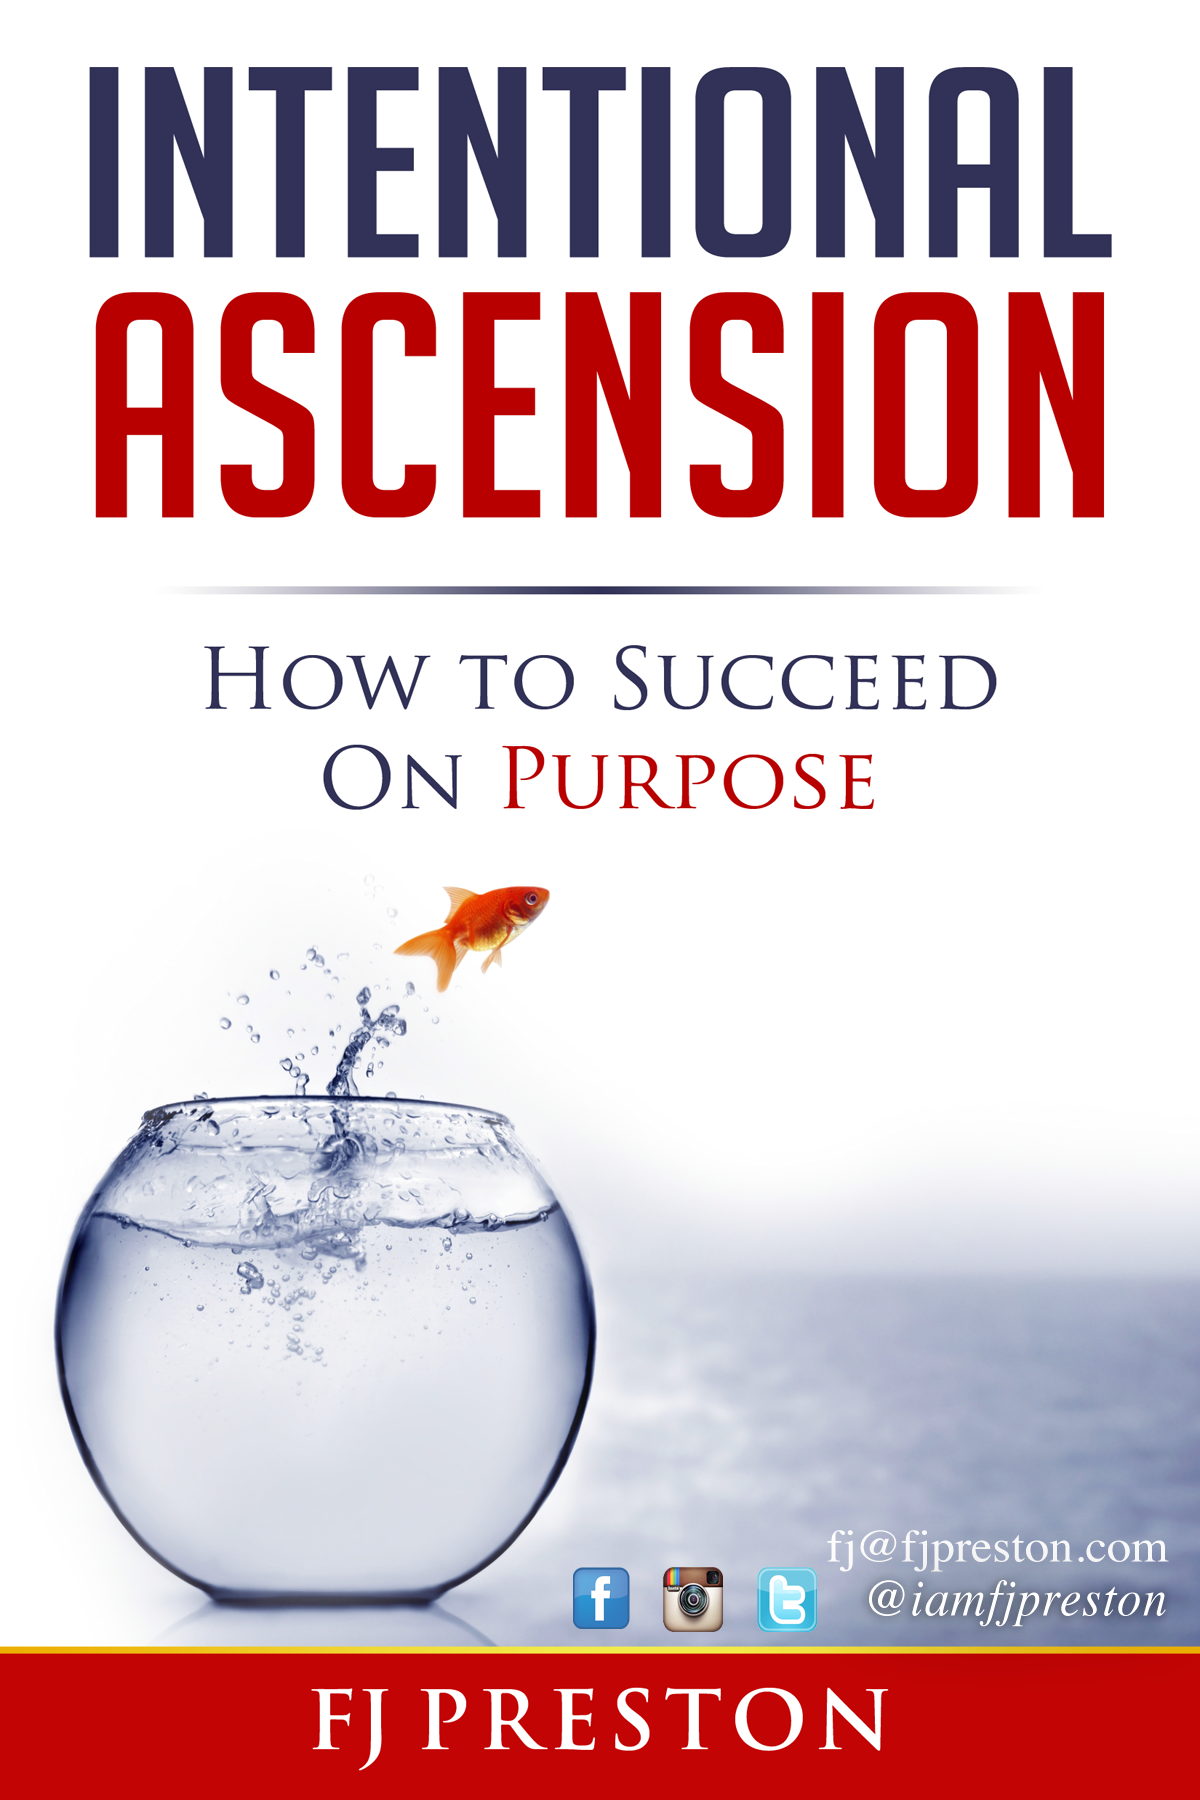 Intentional Ascension cover 18B.png